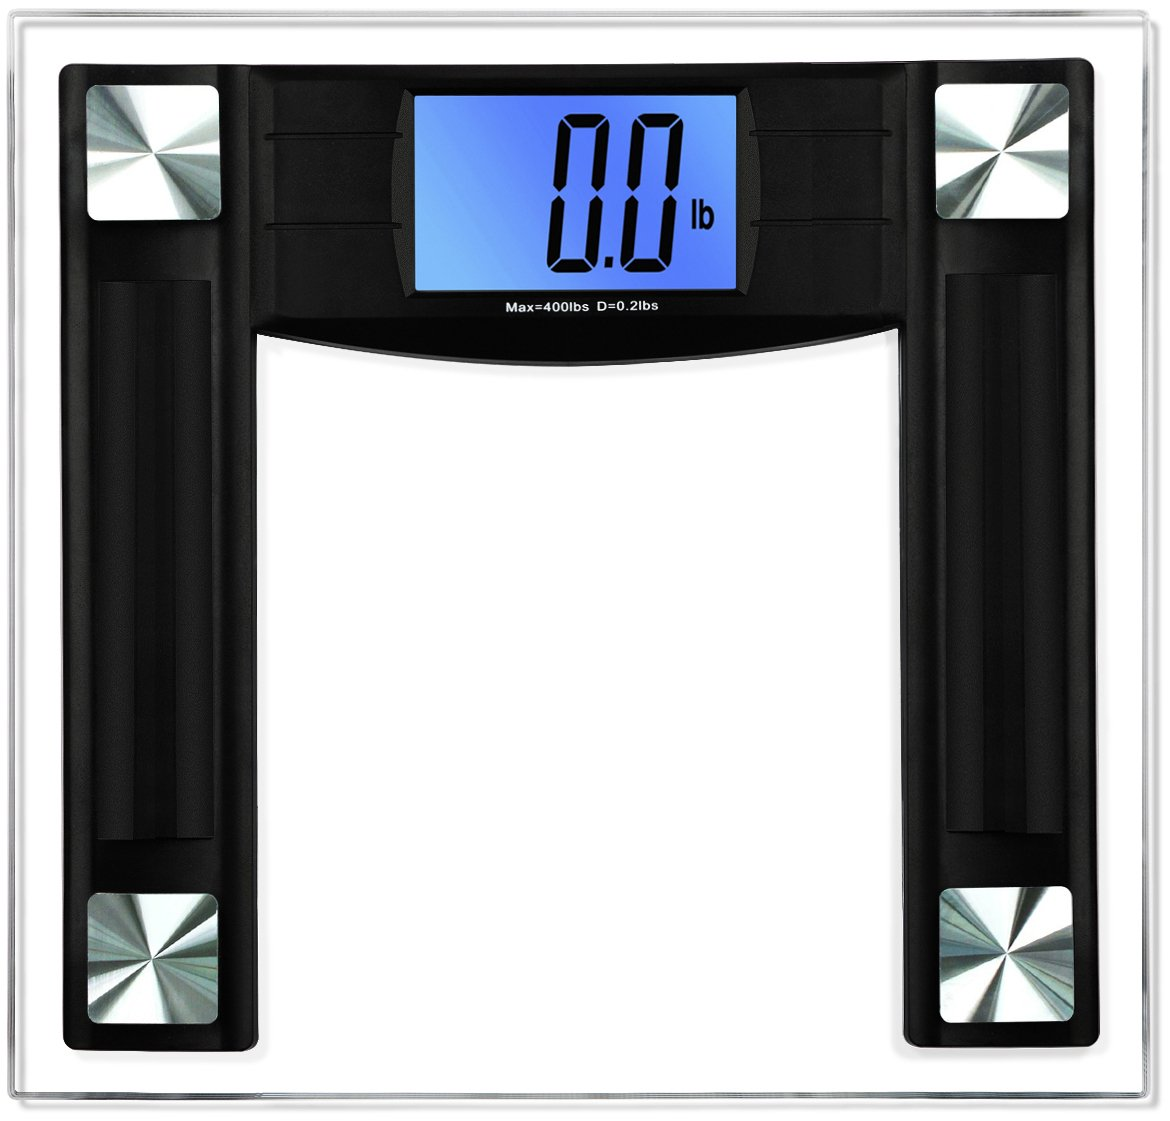 BalanceFrom High Accuracy Digital Bathroom Scale with 4.3'' Large Backlight Display and Step-on Technology, Black